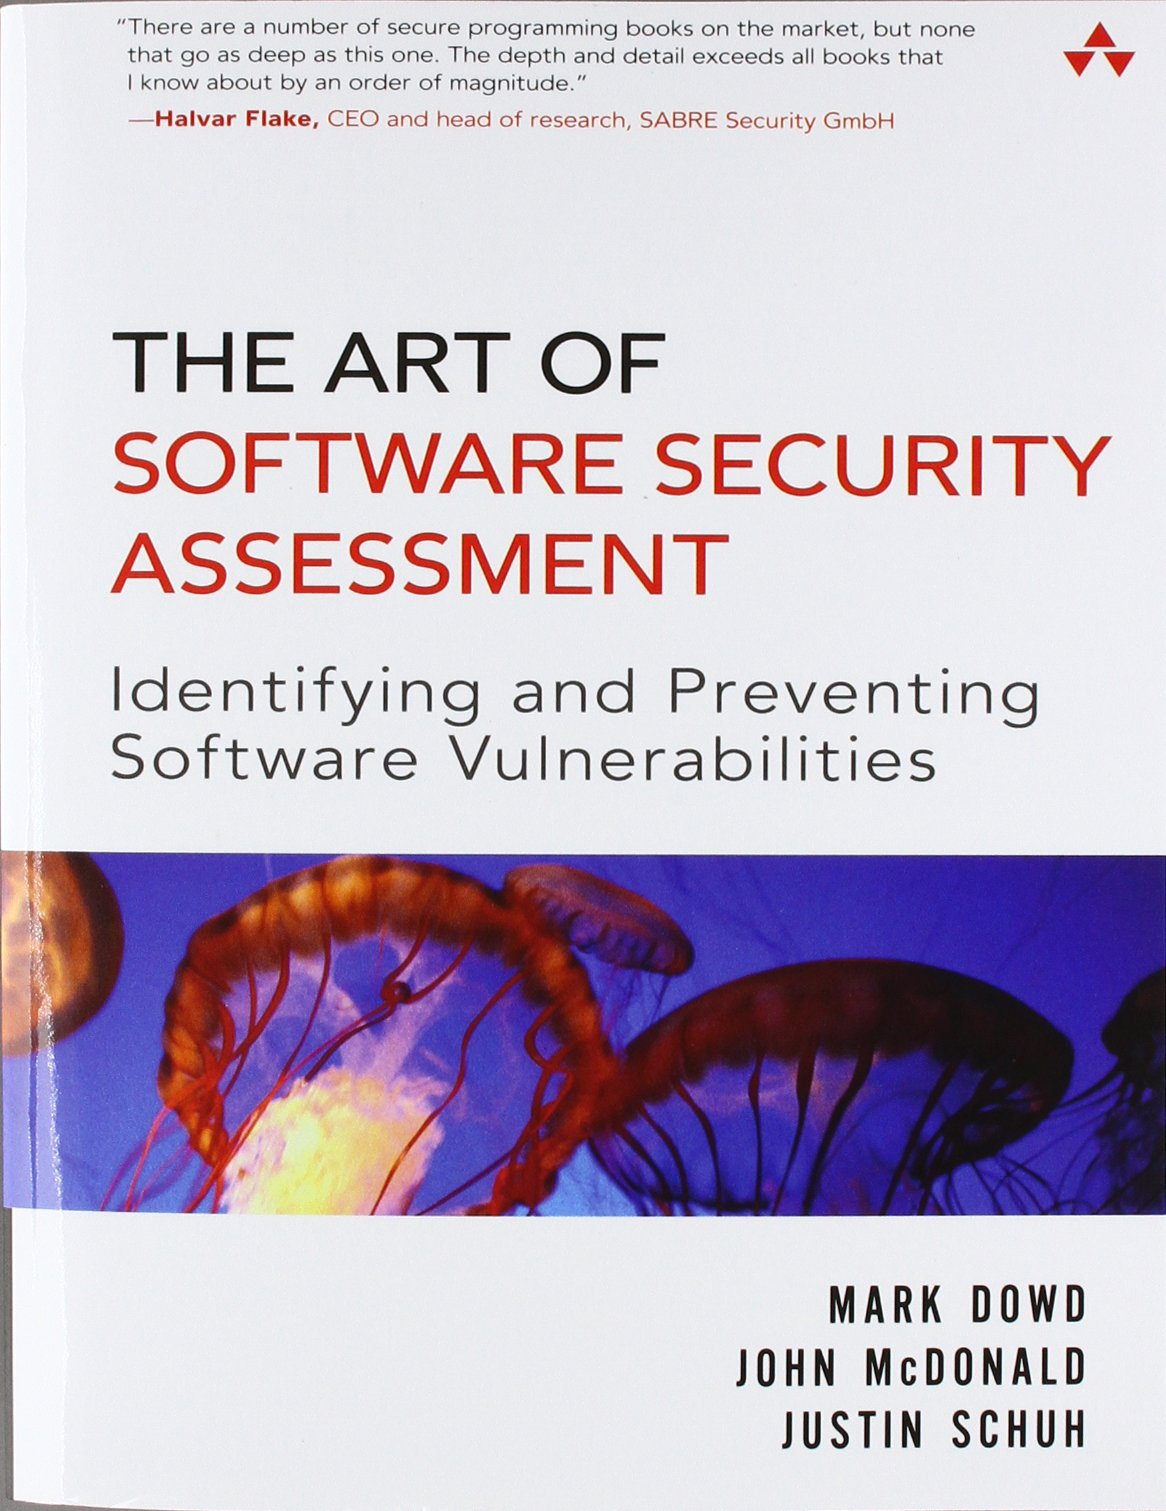 The Art of Software Security Assessment: Identifying and Preventing Software Vulnerabilities (2 Volume set) by Addison-Wesley Professional